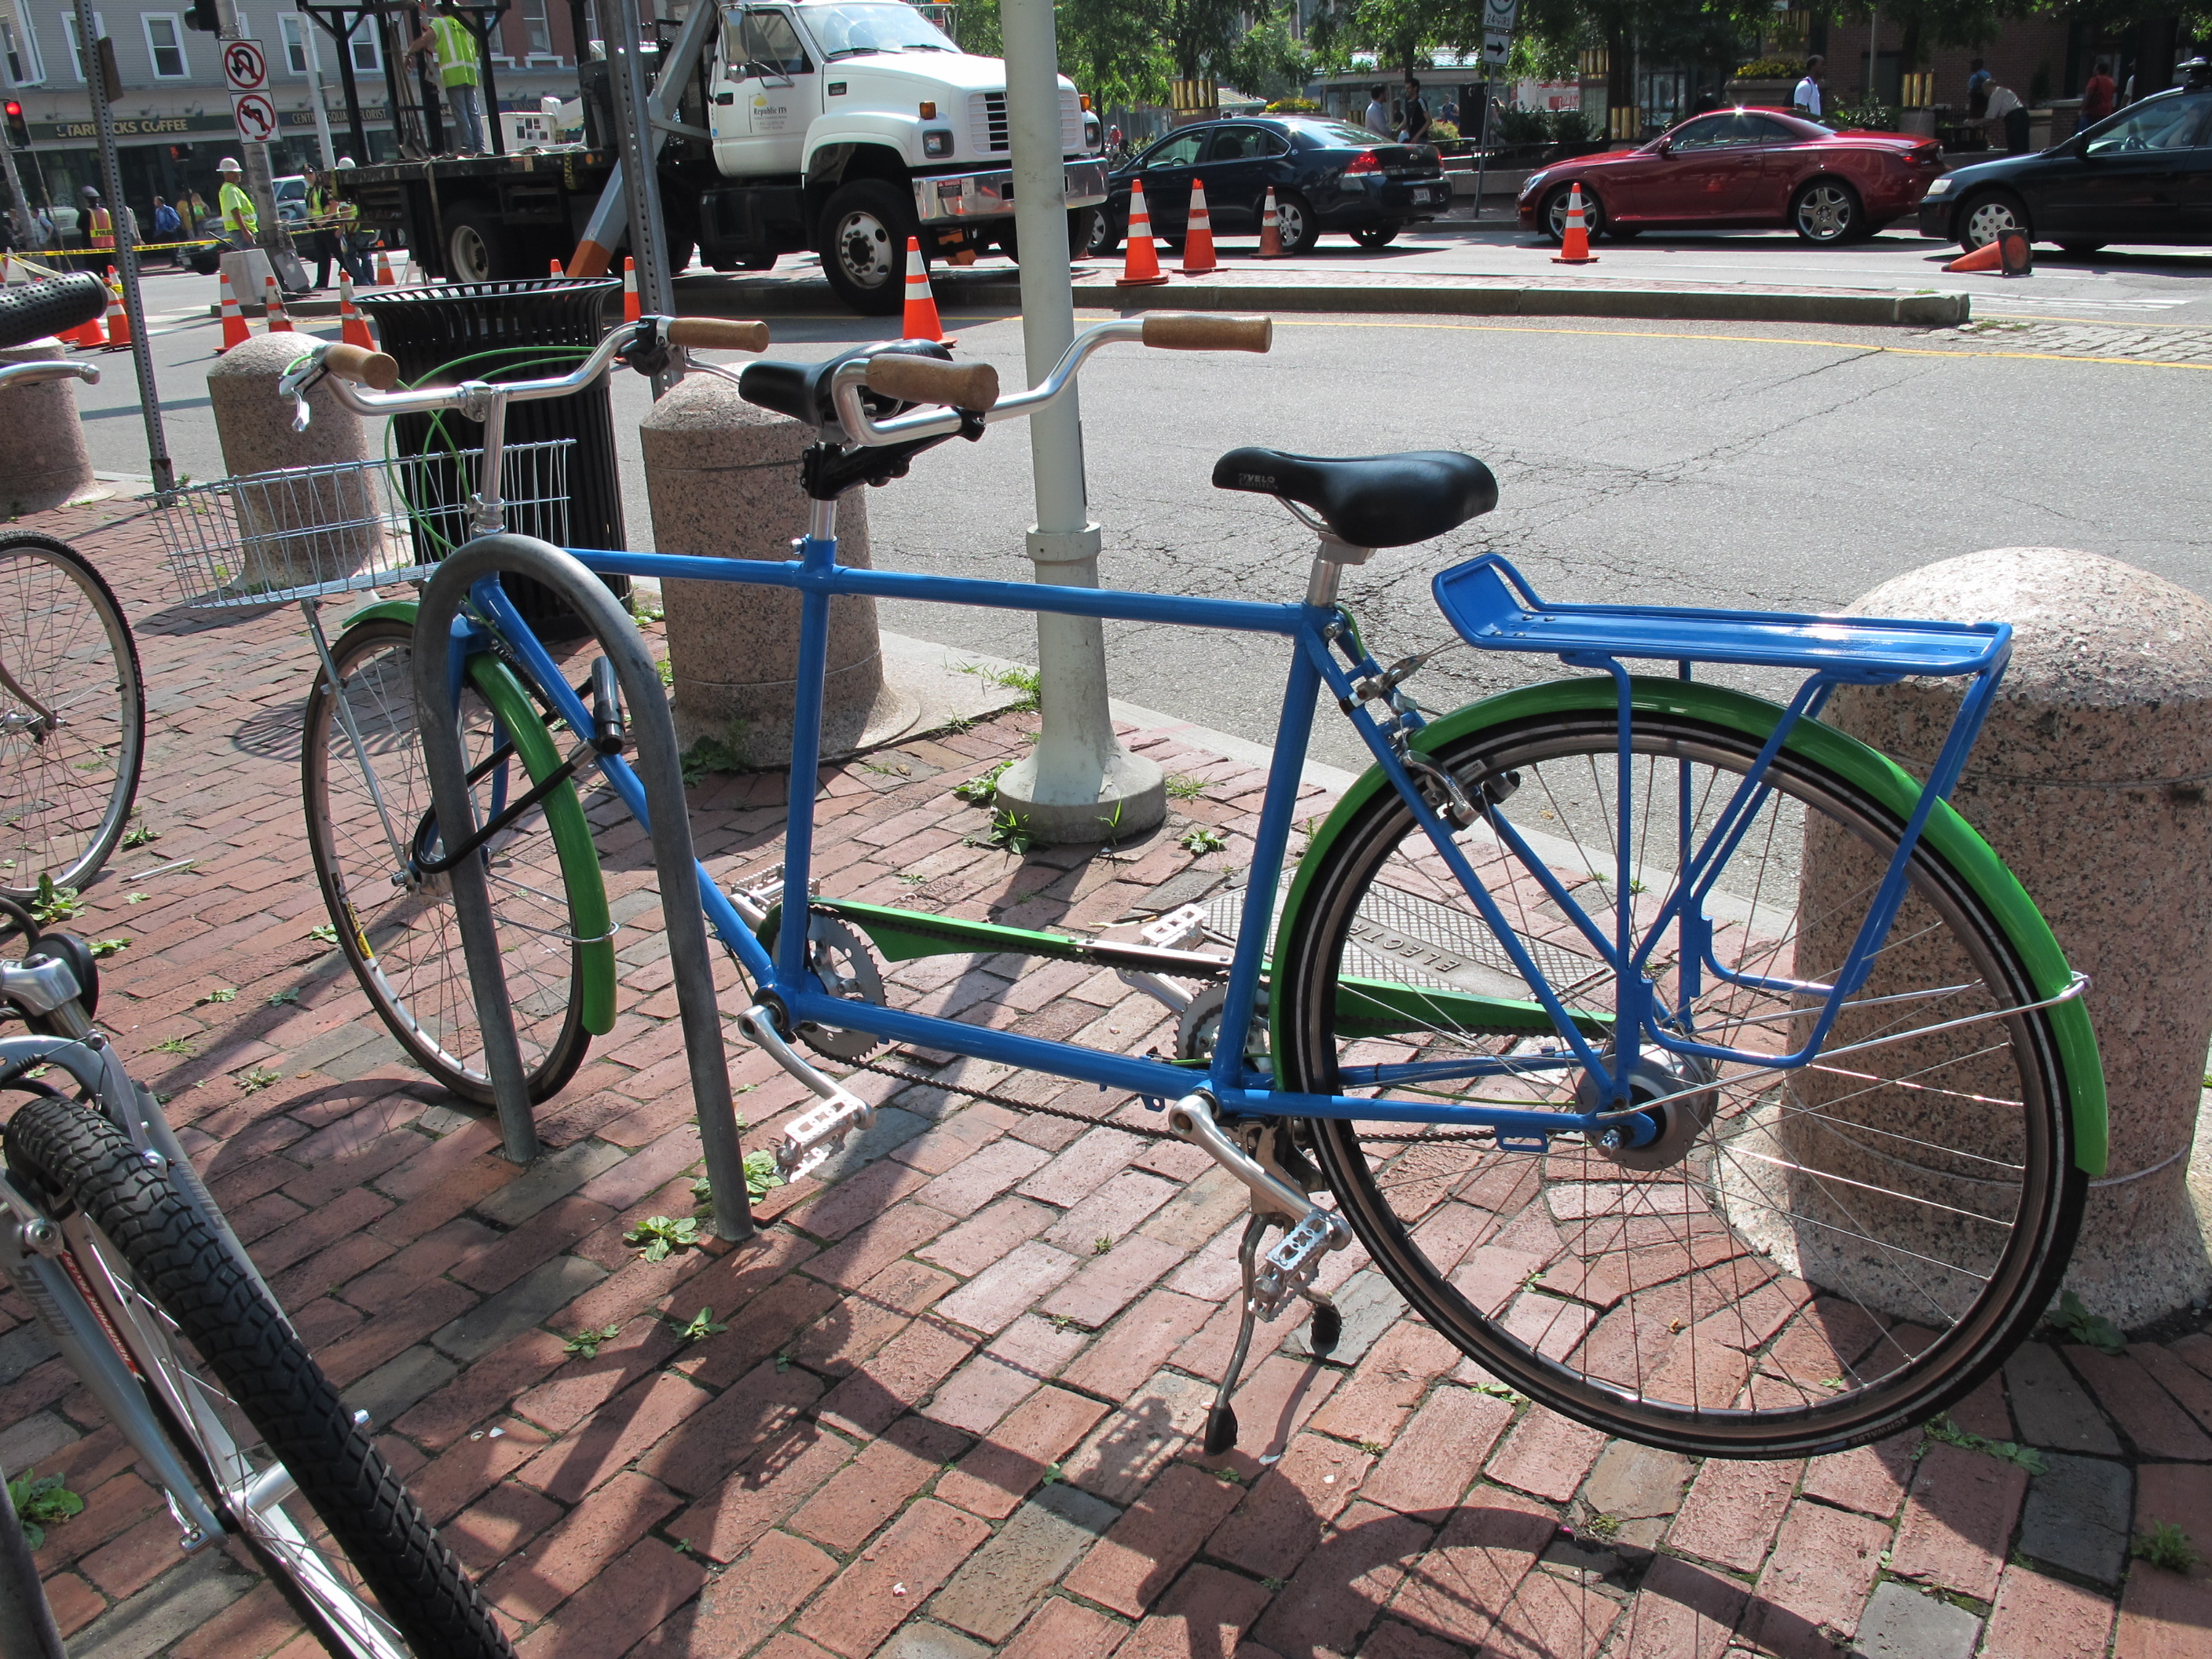 tandem bicycle locked to bike rack